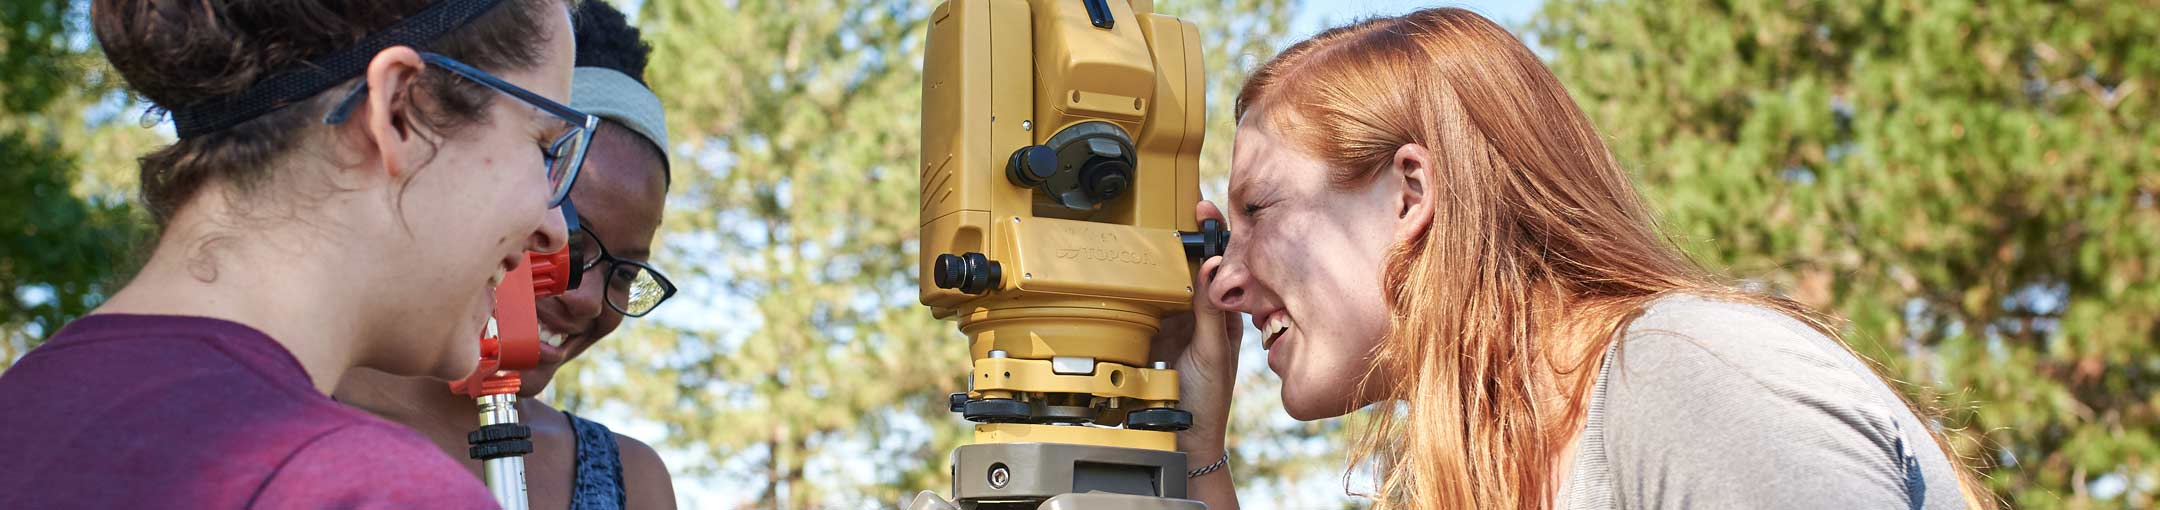 Students looking through a surveying tool